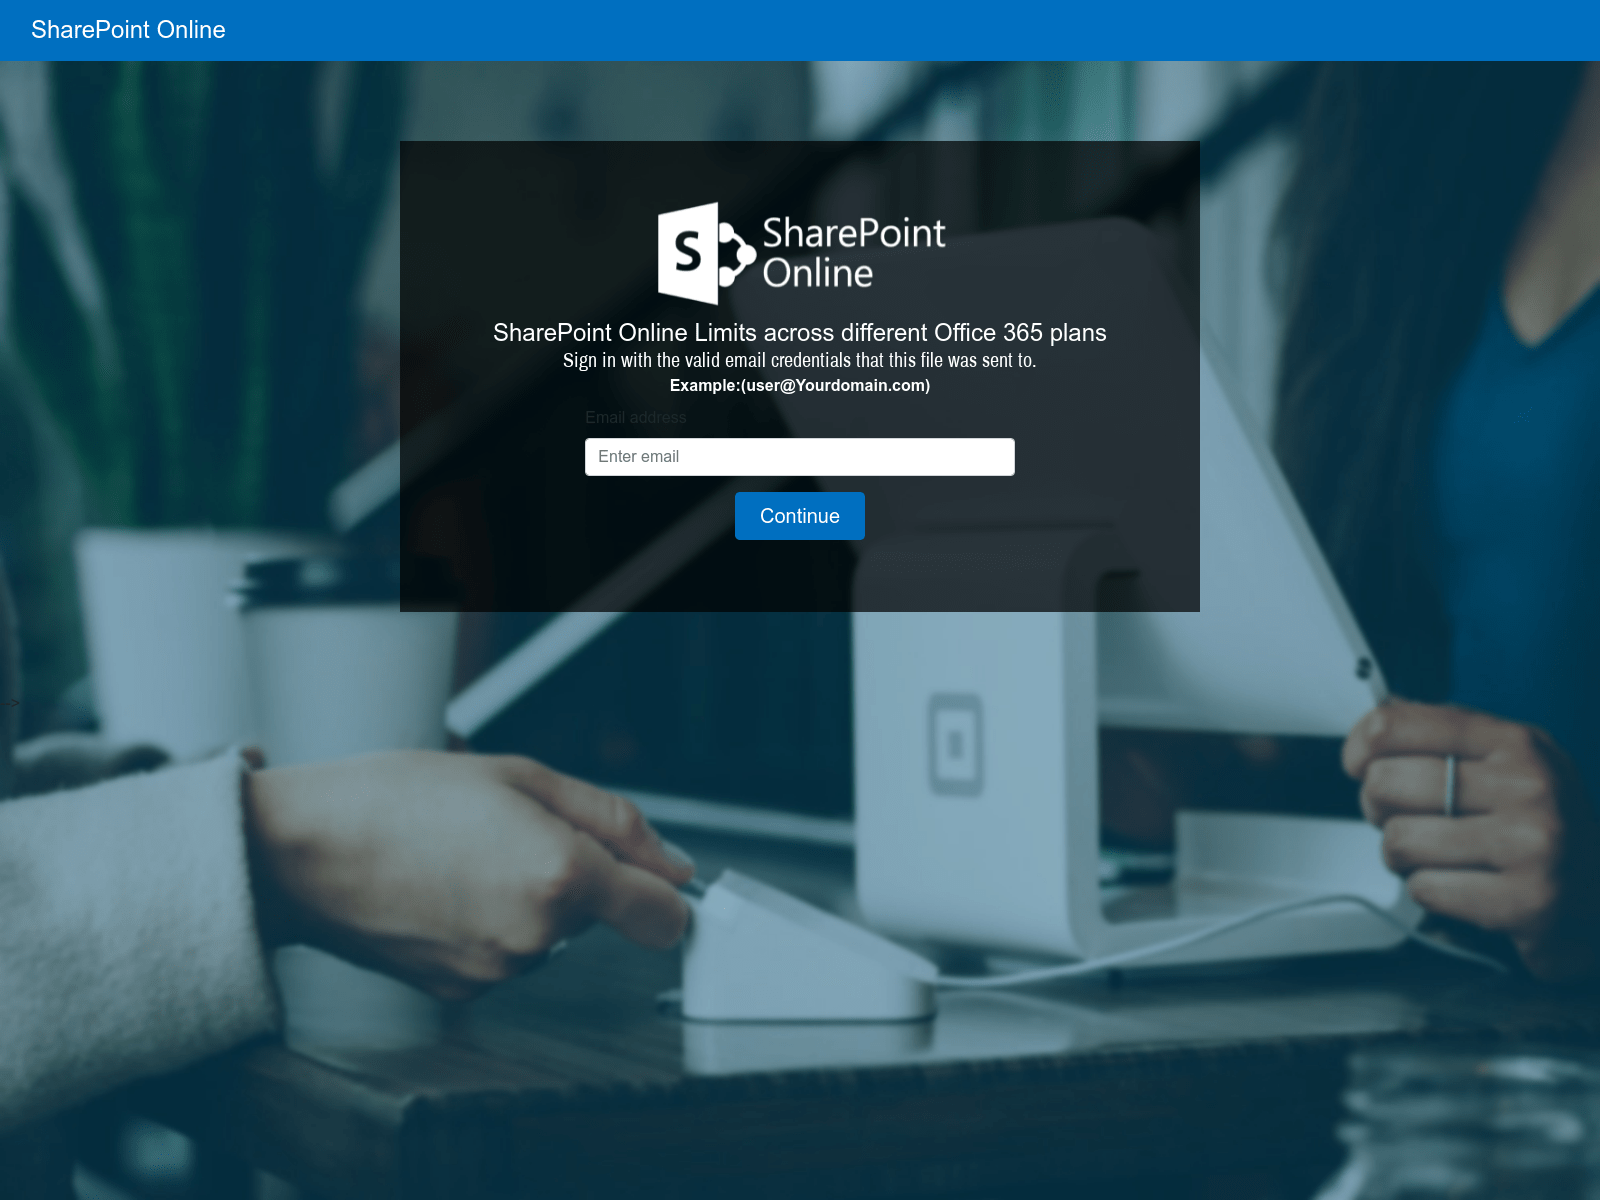 Credential harvesting often is accomplished through malicious login requests impersonating legitimate companies, such as the fake Microsoft login page shown here.